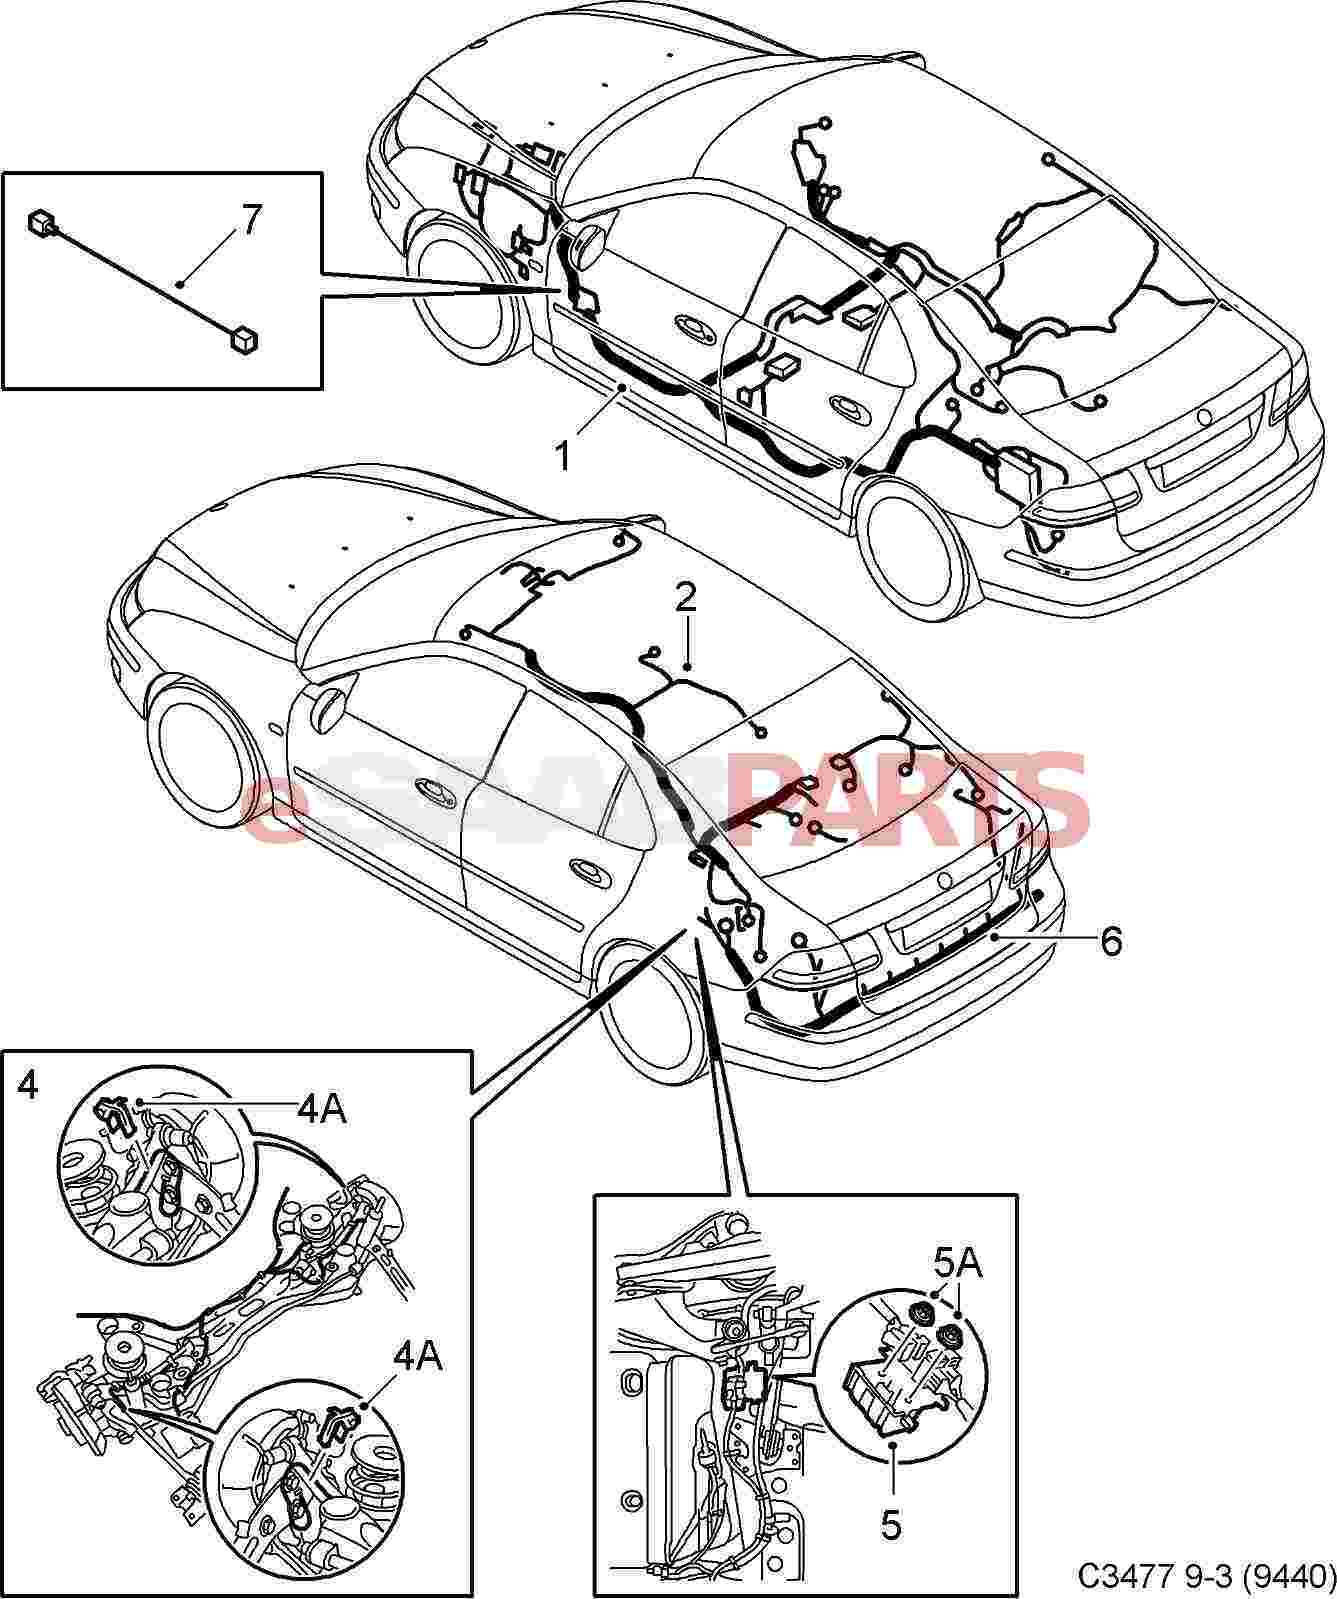 79060 esaabparts com saab 9 3 (9440) \u003e electrical parts \u003e wiring Wiring Diagram 2003 Saab 9-3 Convertible at soozxer.org